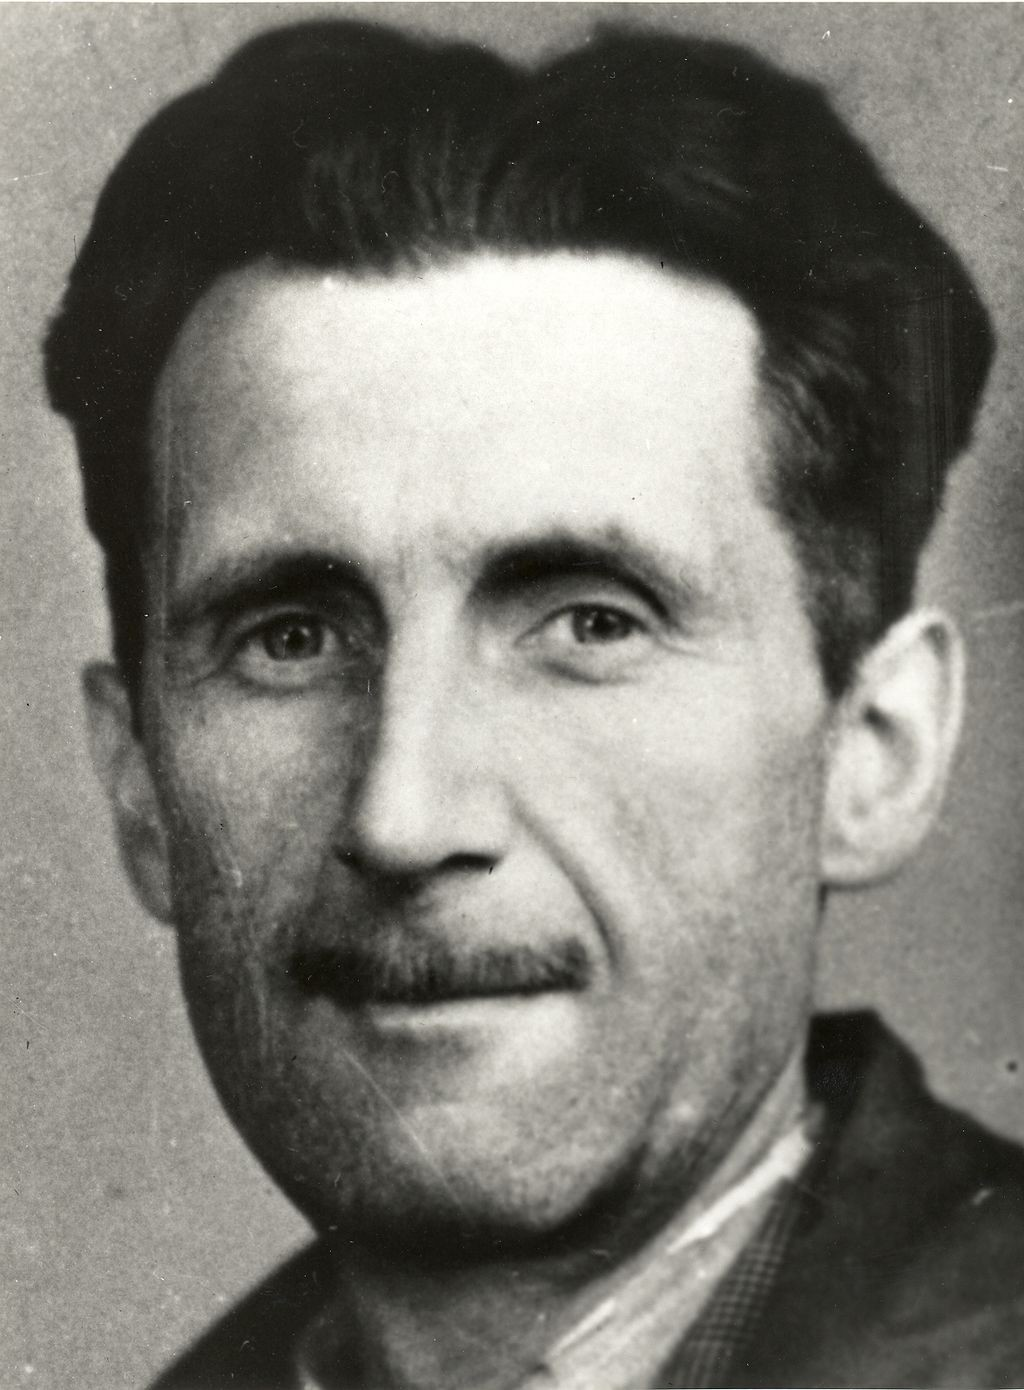 George Orwell (Foto: Branch of the National Union of Journalists, via Wikimedia Commons)